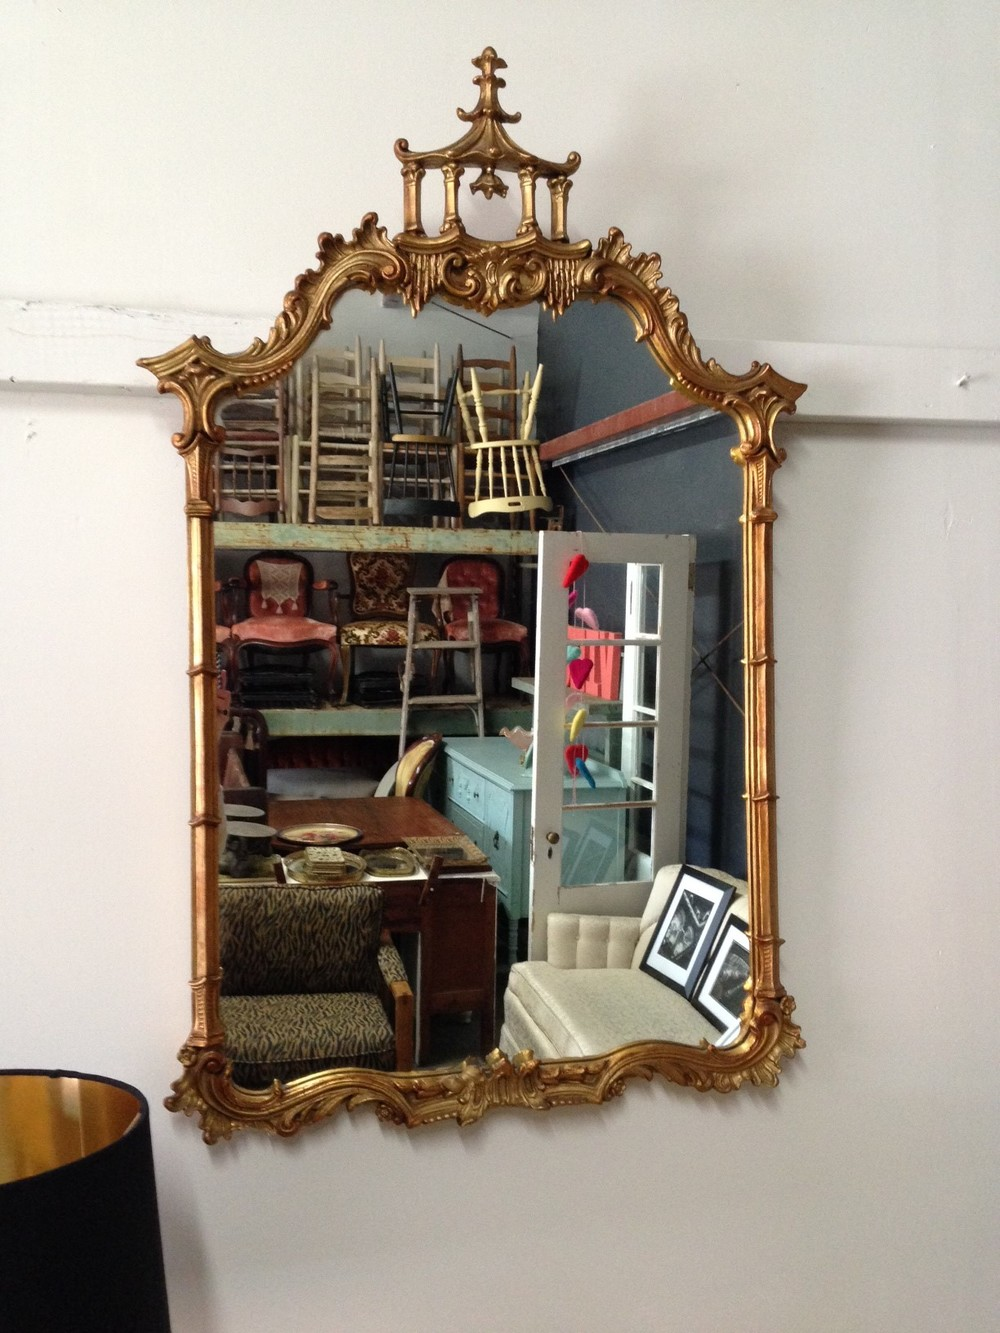 Pagoda mirror... I should have MADE room in my house for this one!!! But I can't keep everything I find. That's called hoarding and it's a serious disorder, so I'm happy that this guy found a forever home.